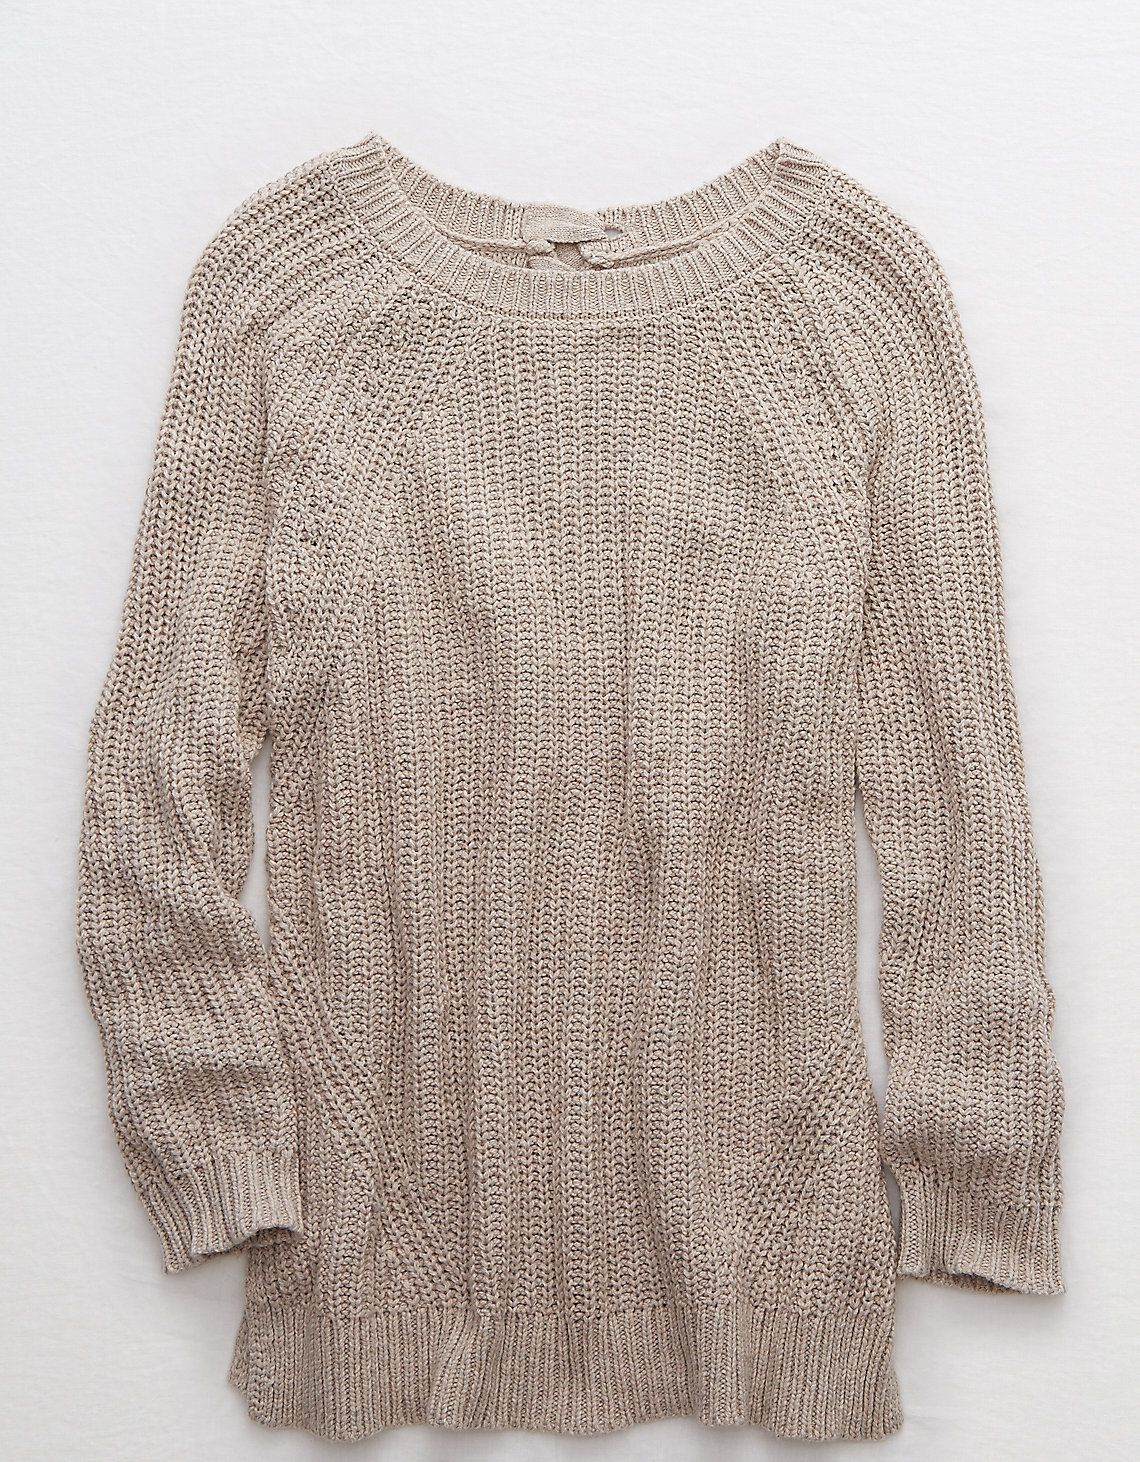 Aerie Lace-Up Tunic Sweater | Heather brown, American eagle ...